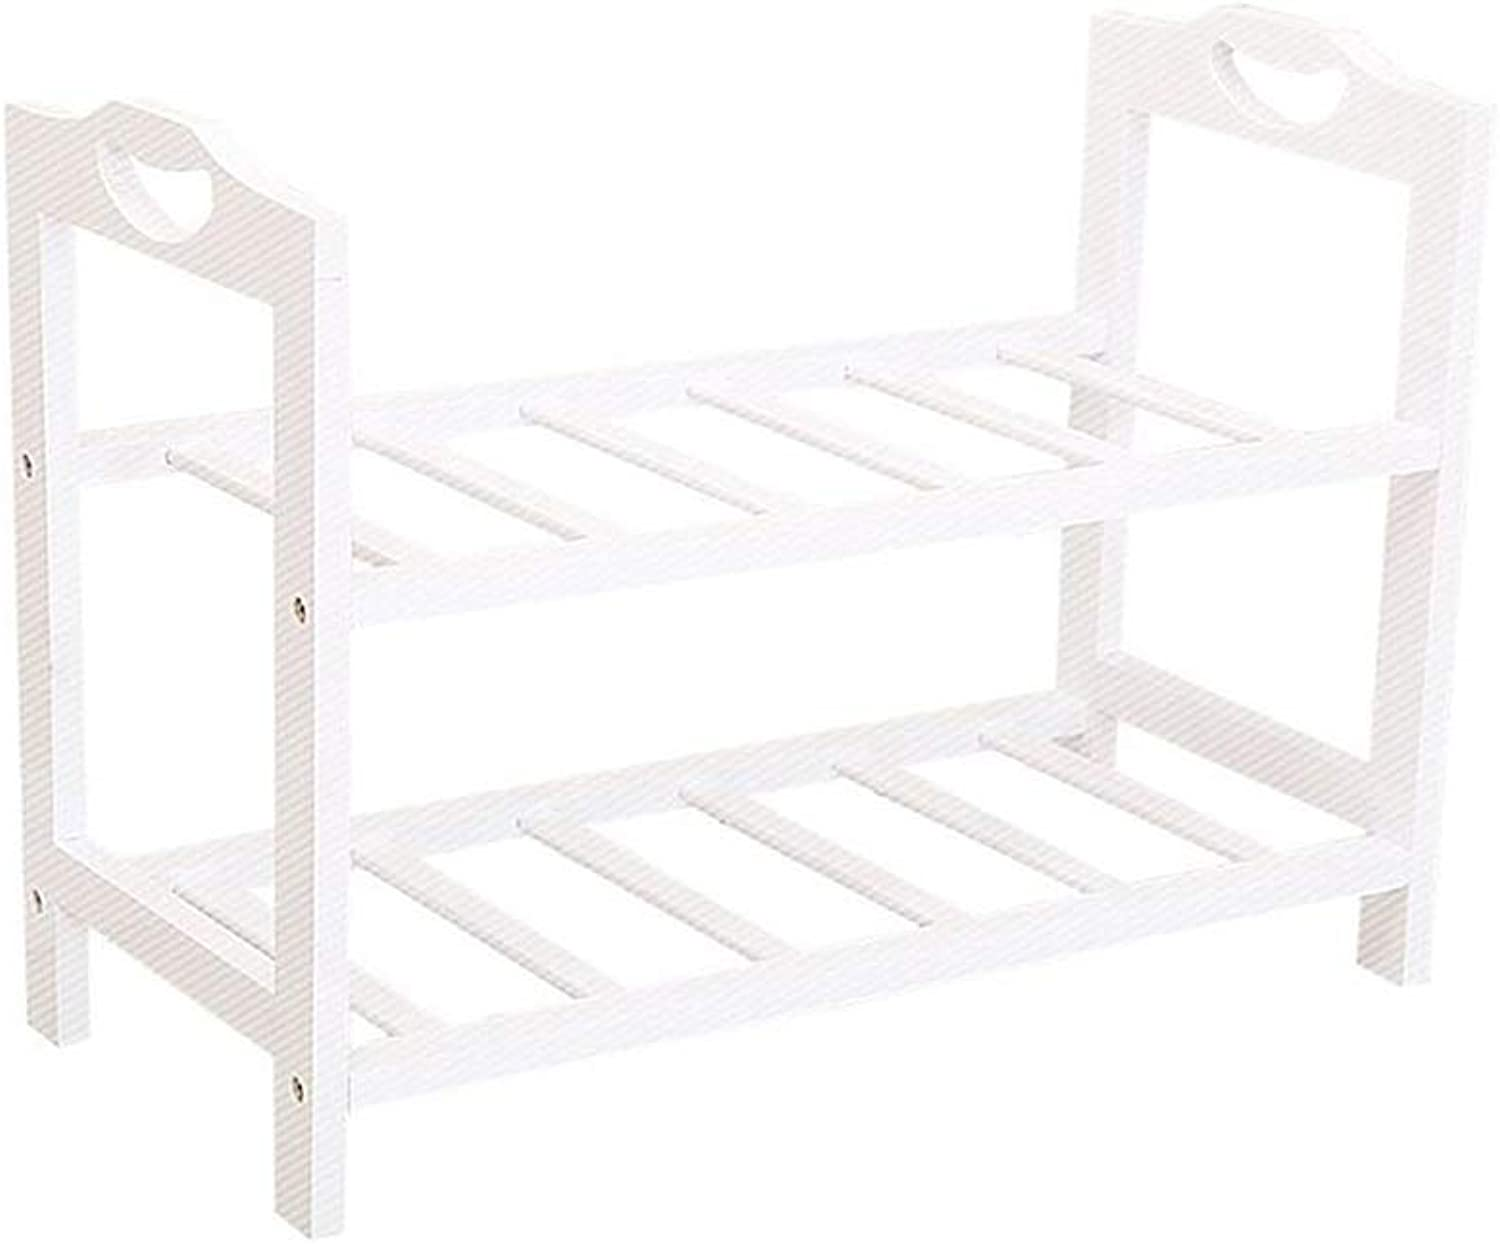 Teng Peng Practical shoes Rack-Flat Multi-Layer shoes-shoes Cabinet Storage Cabinet Solid Wood Cabinet Tower Space Saving Storage Design-White shoes Storage Rack